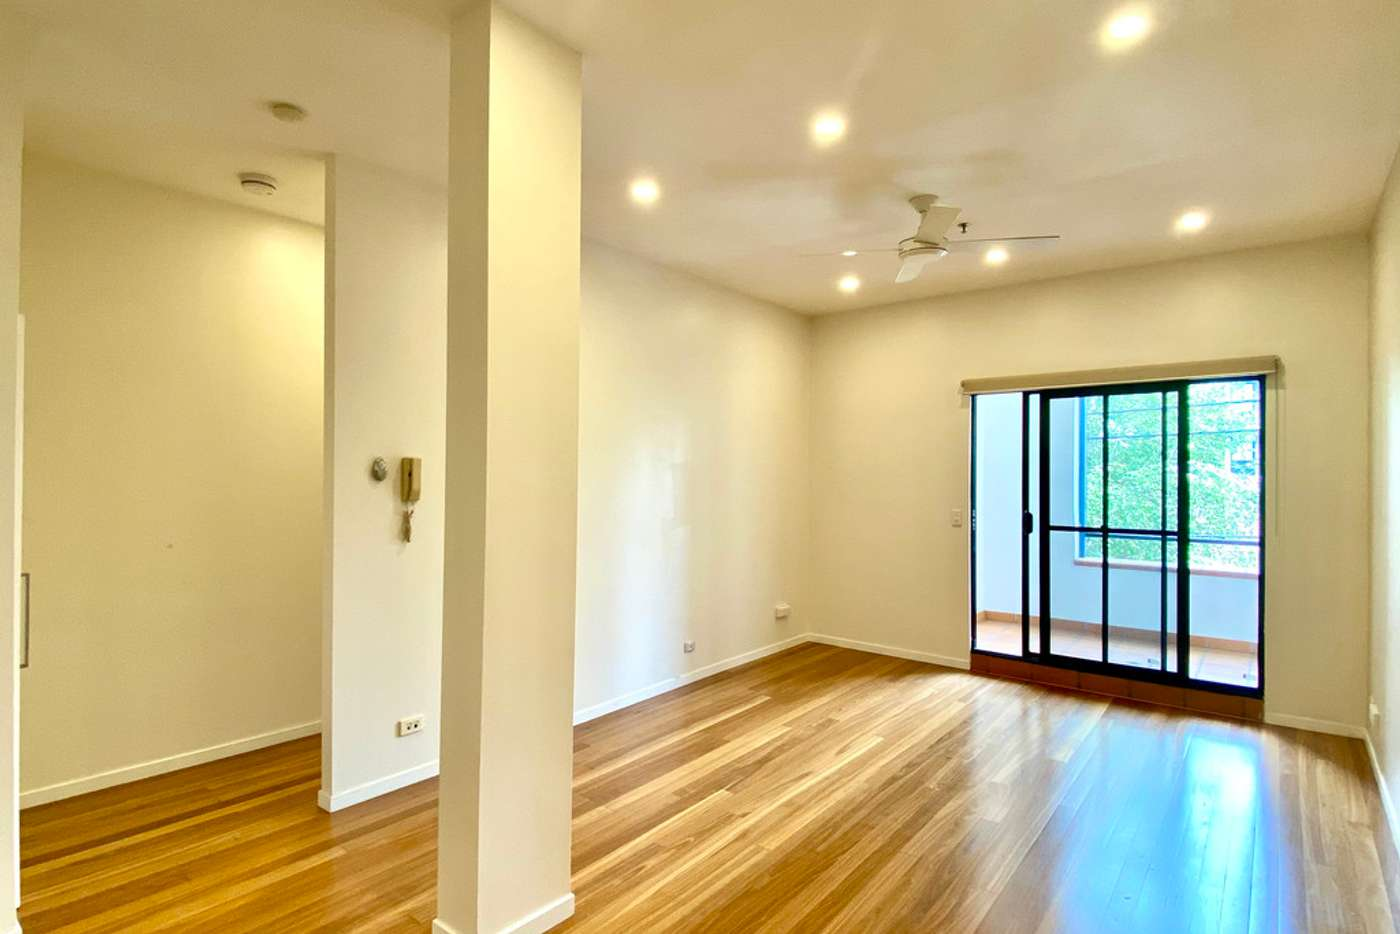 Main view of Homely unit listing, 11/16-22 Australia Street, Camperdown NSW 2050